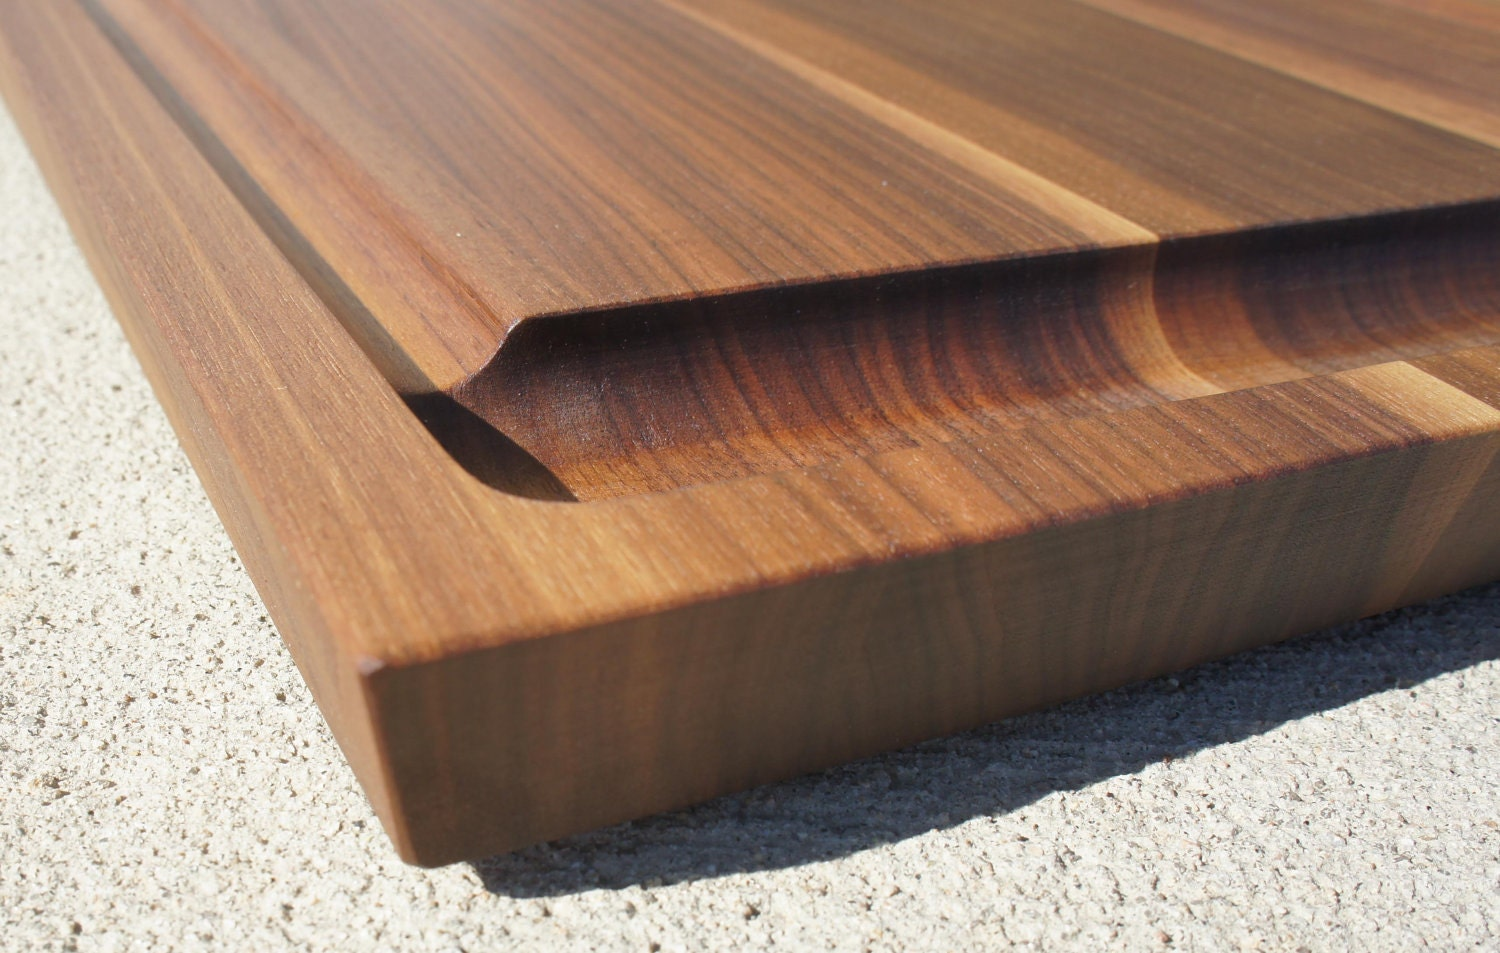 Unique Gift Wood Cutting Board Walnut Cherry Or By Zuernermade